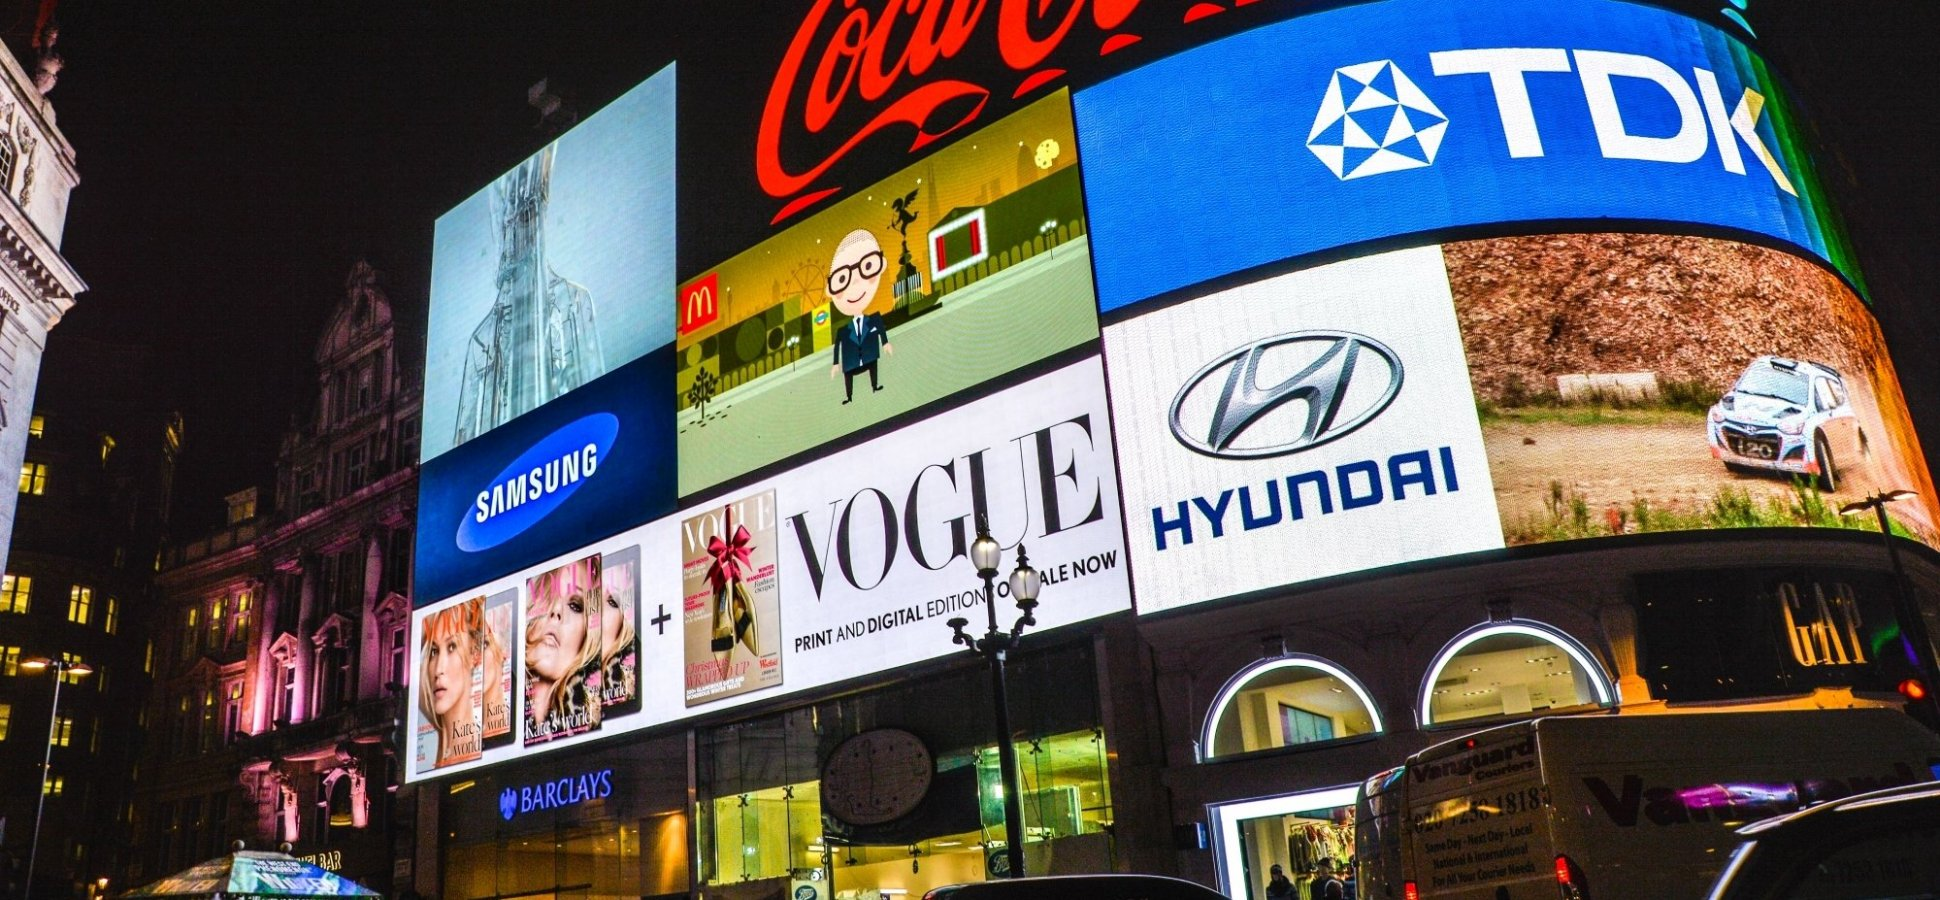 96 Percent of Consumers Don't Trust Ads. Here's How to Sell Your Product Without Coming Off Sleazy